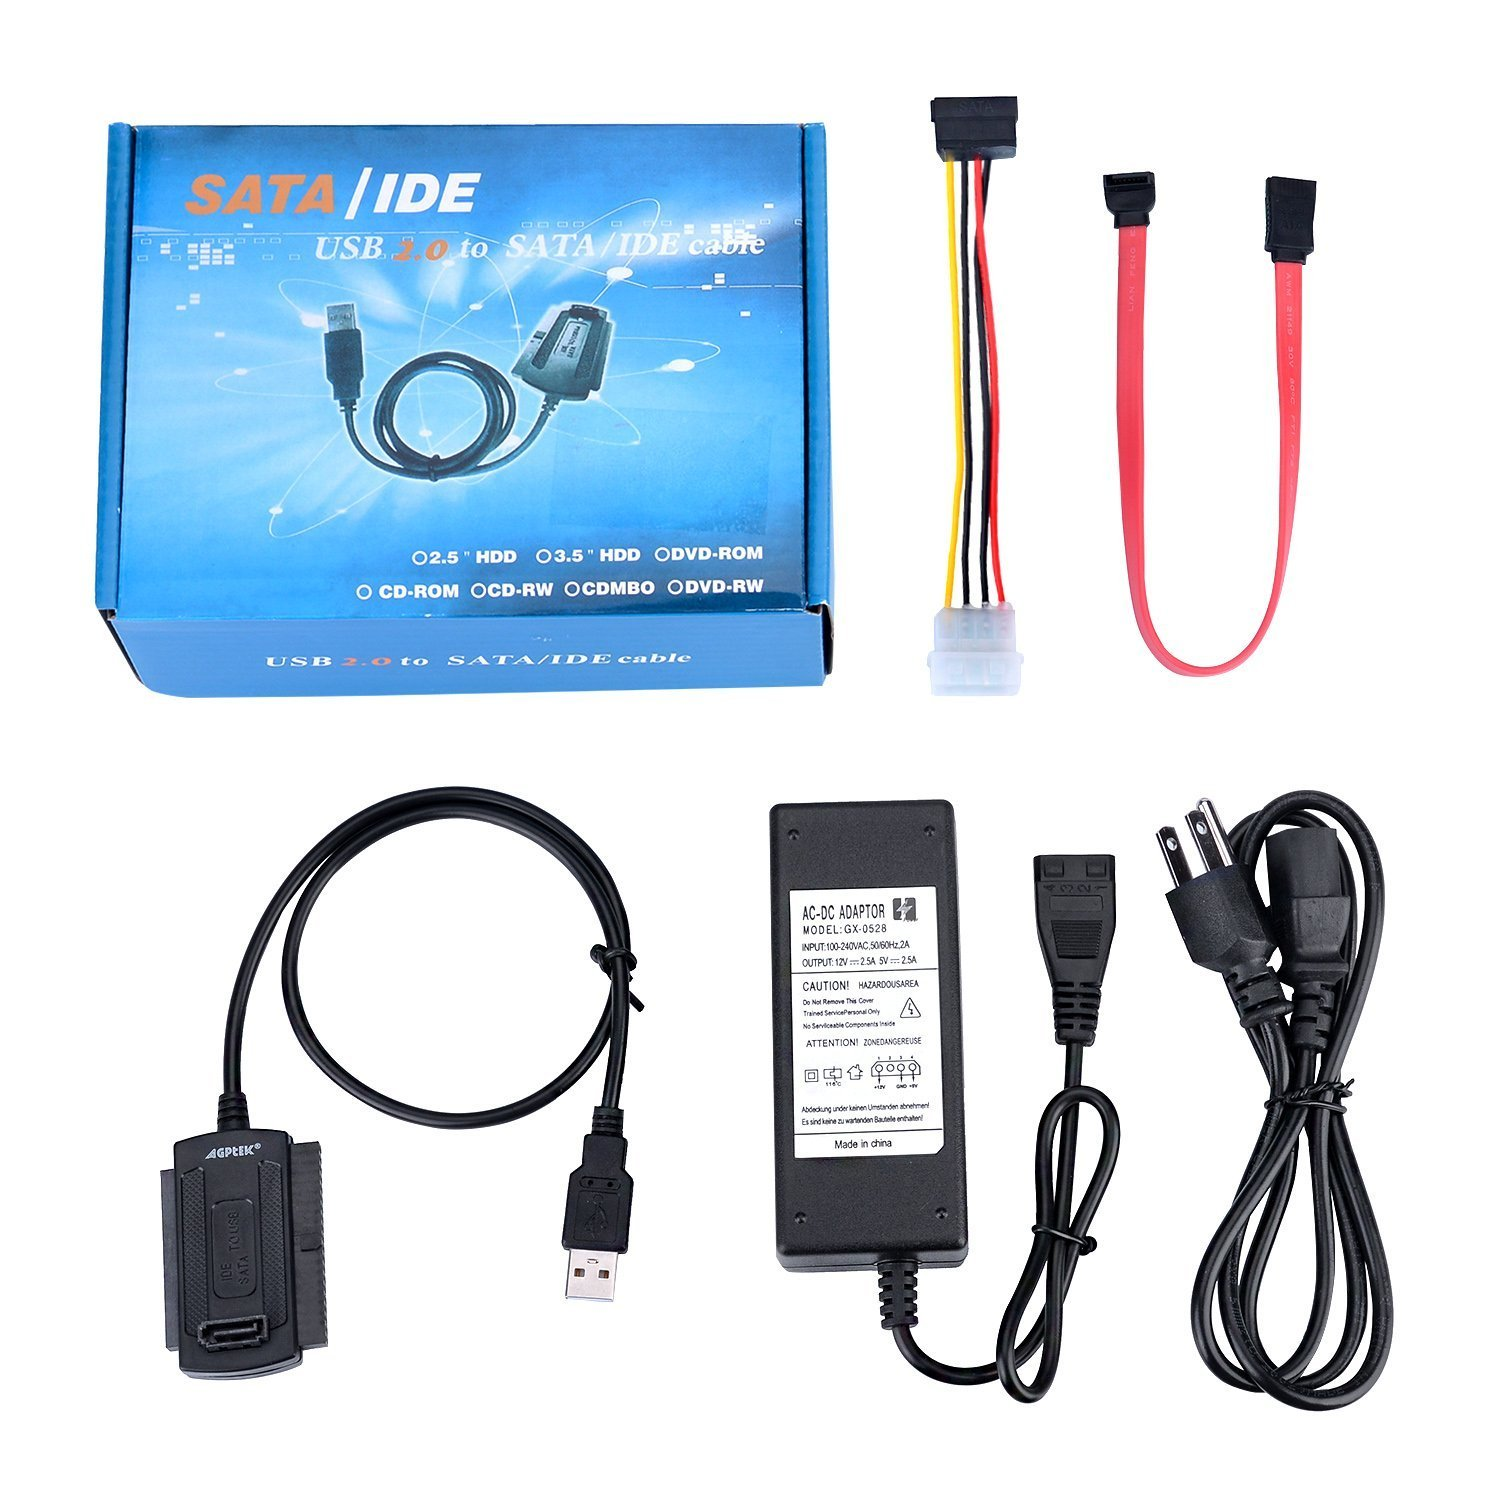 SATA/PATA/IDE Drive to USB 2.0 Adapter Converter Cable for 2.5 / 3.5 / 5.25 Inch Hard Drive / Optical Drive with External AC Power Adapter